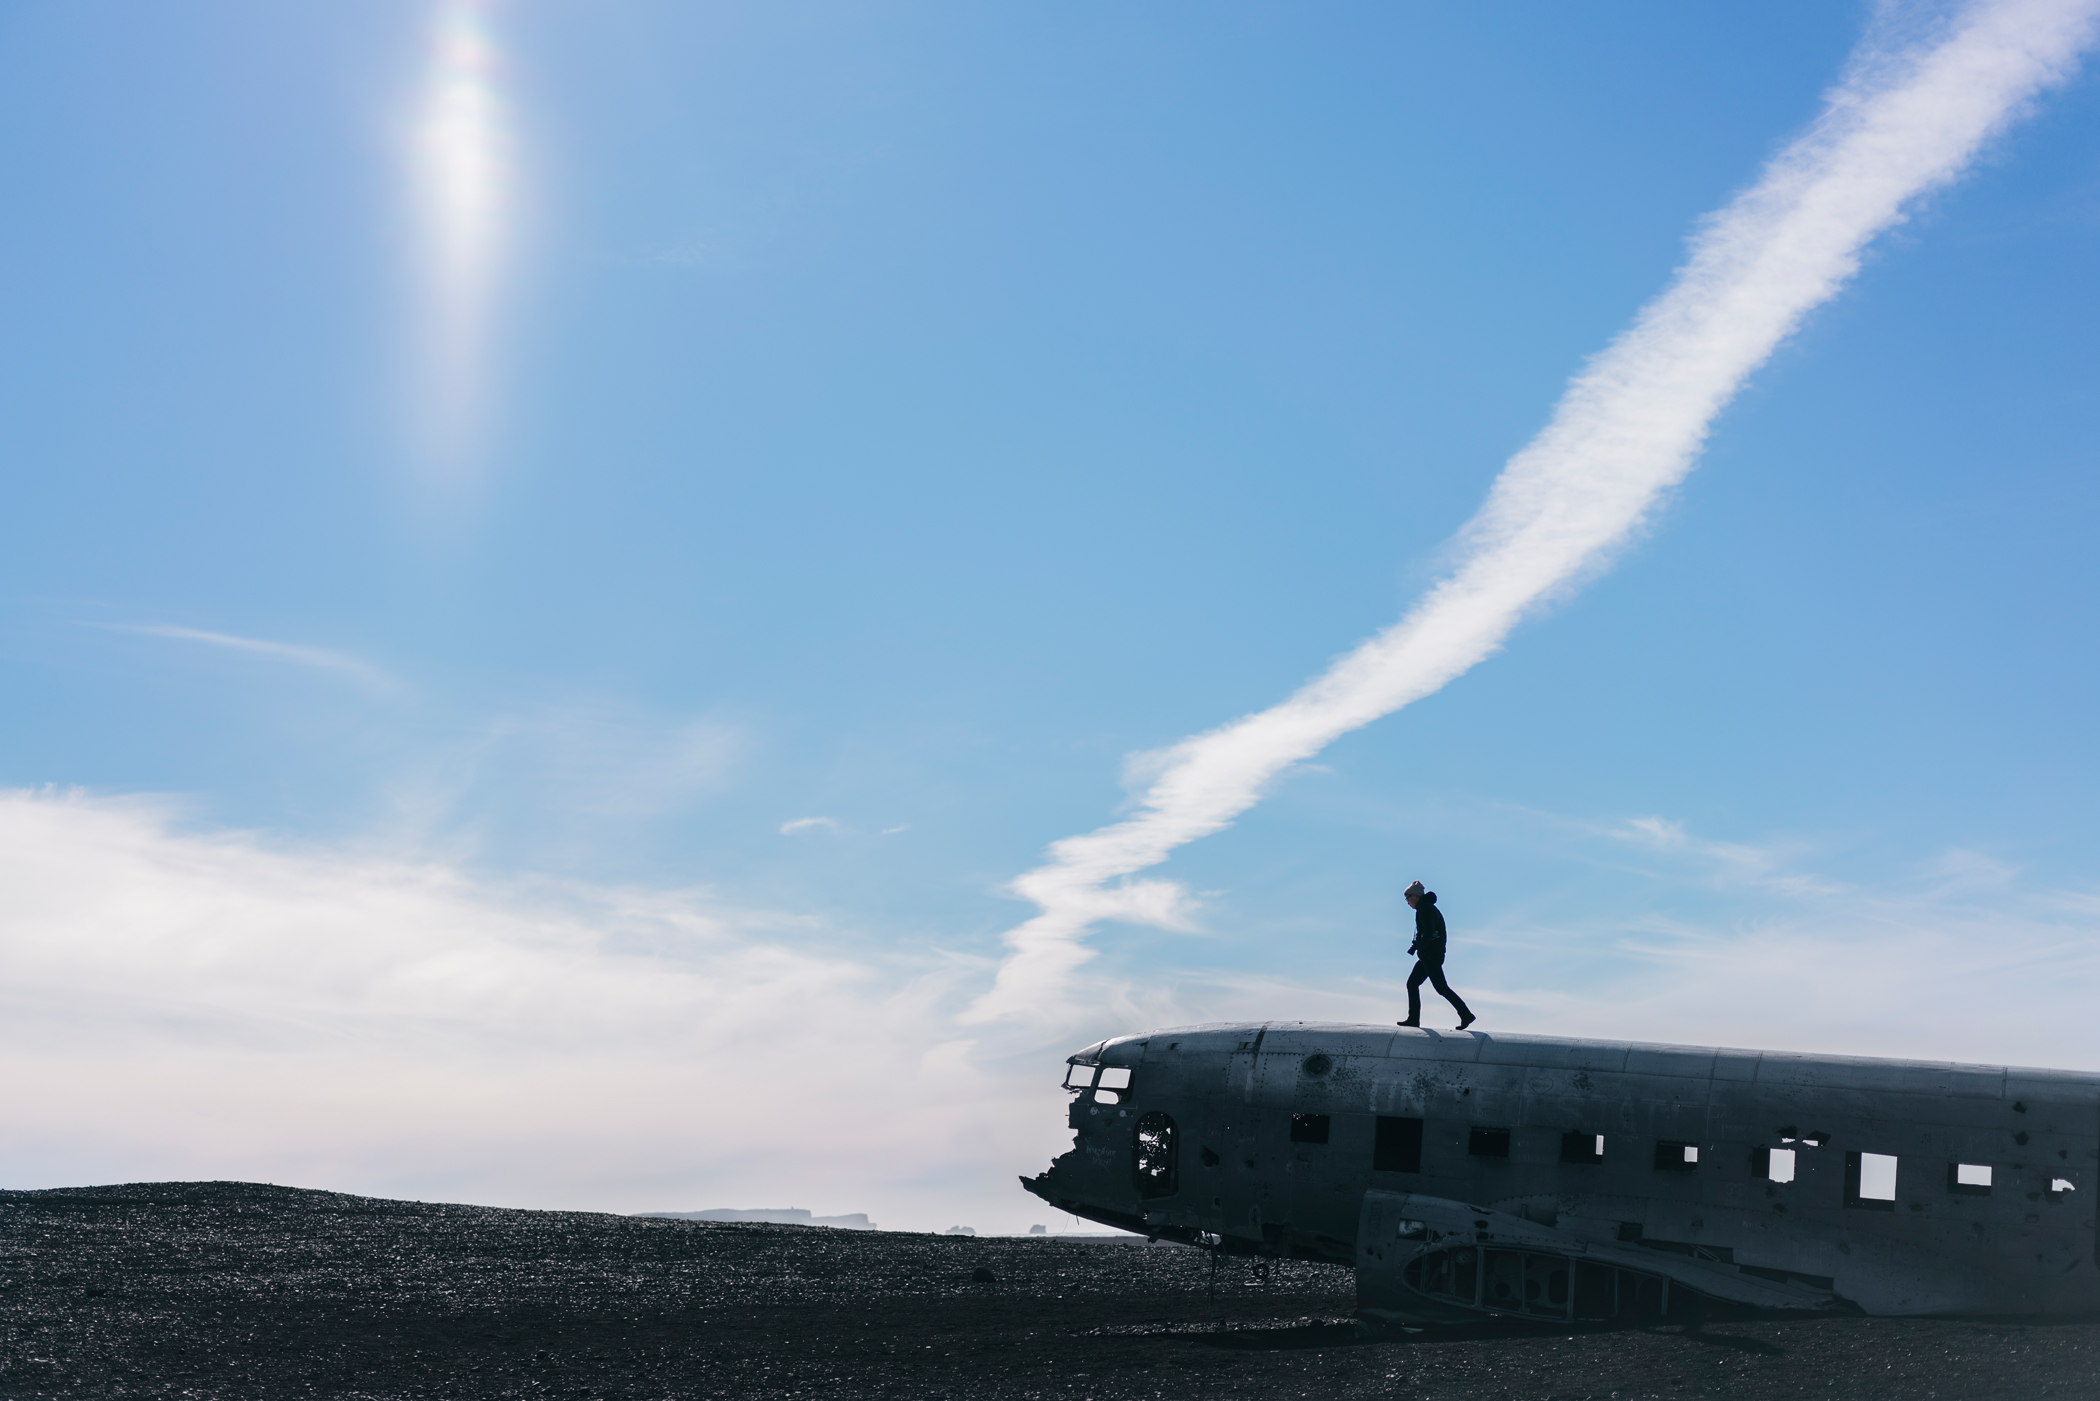 Iceland Travel Diary: The abandoned DC plane, Sólheimasandur, Iceland